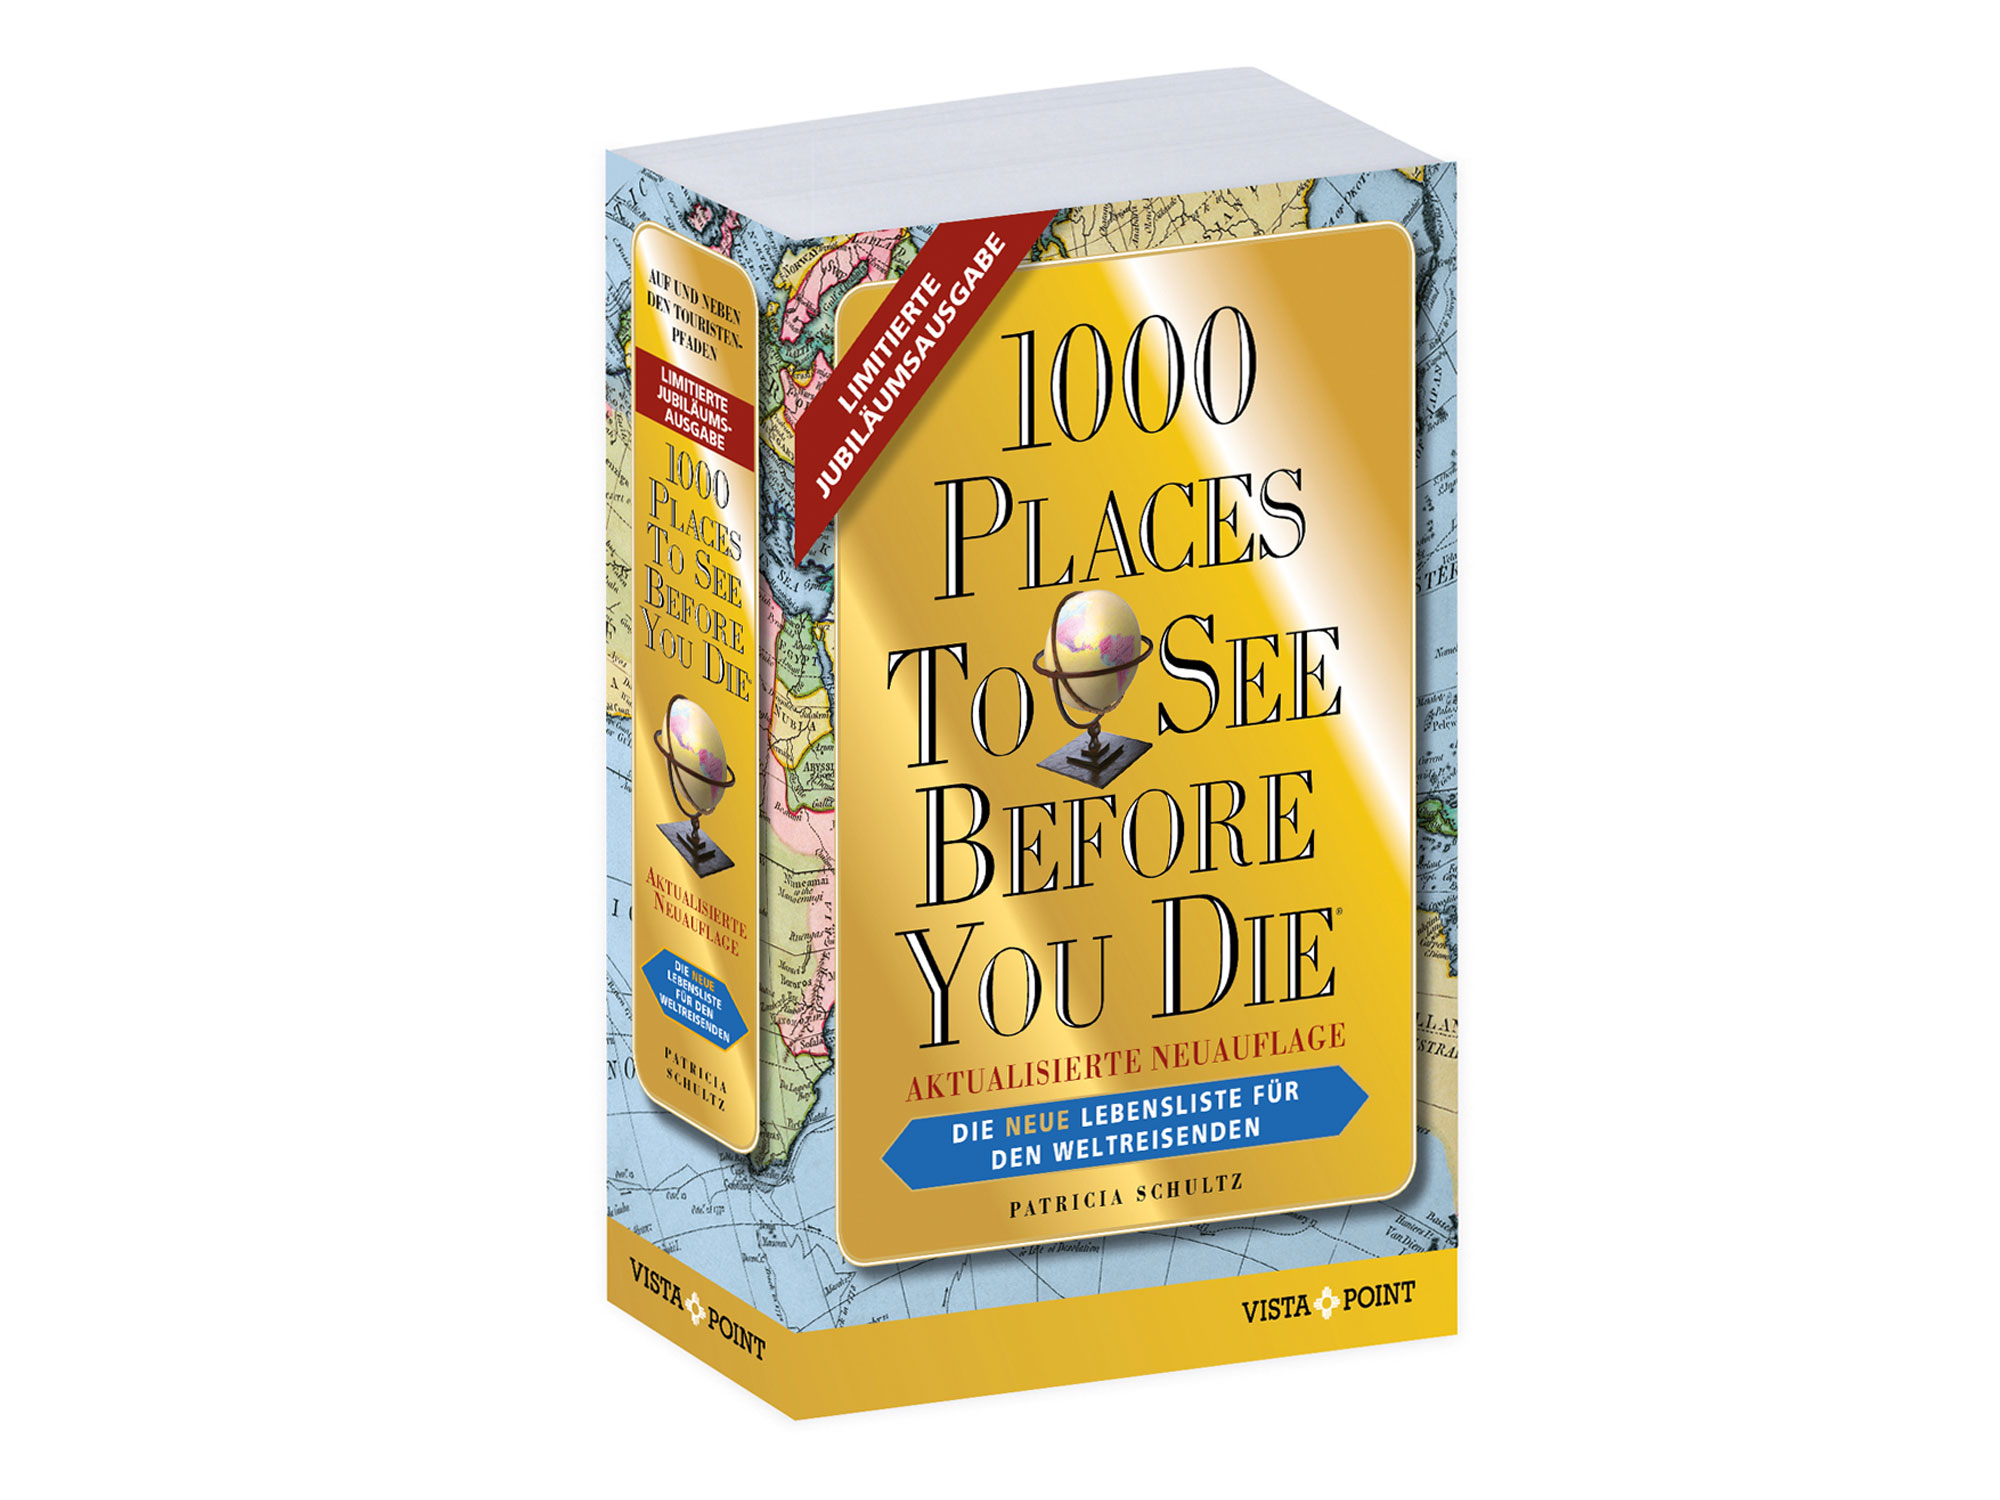 1000 Places To See Before You Die © Vista Point